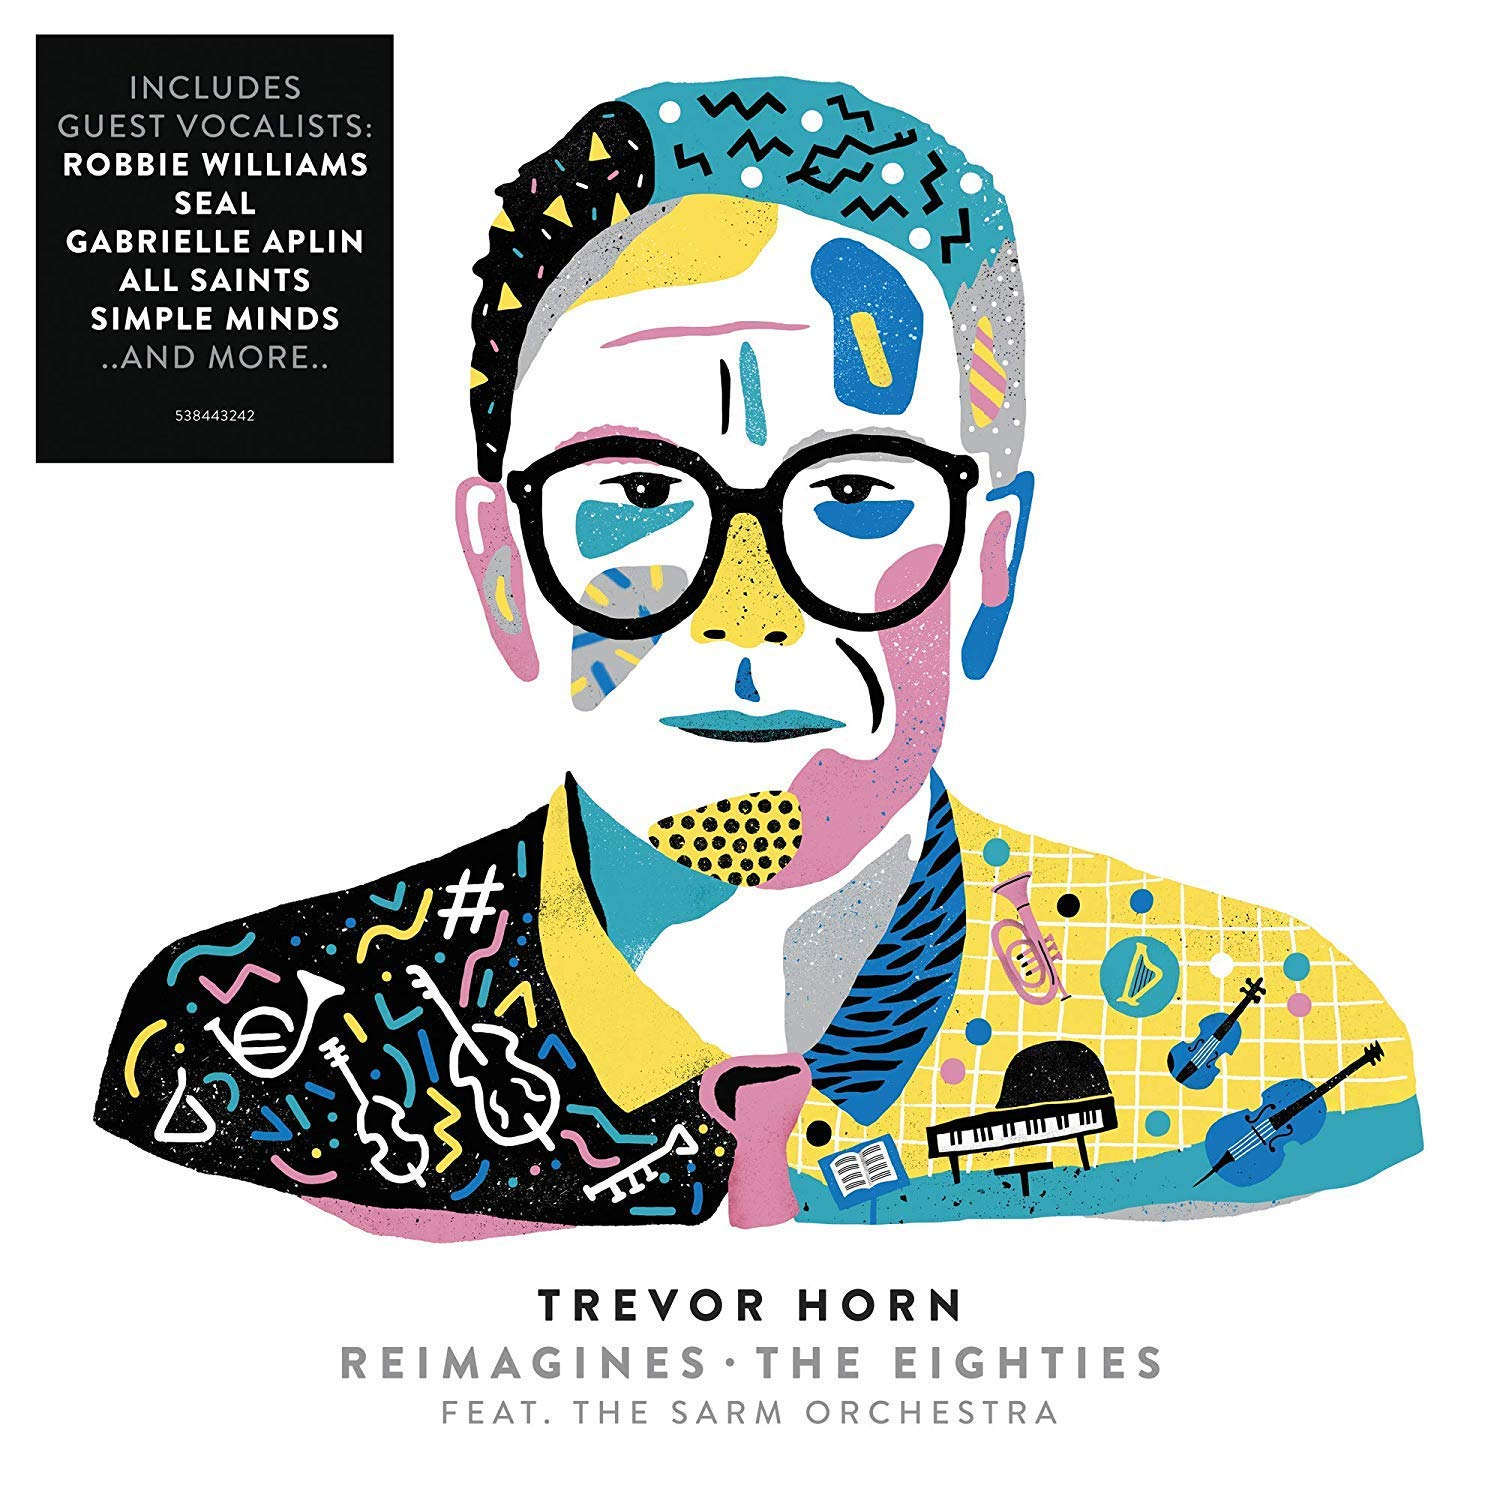 Trevor Horn Reimagines The Eighties